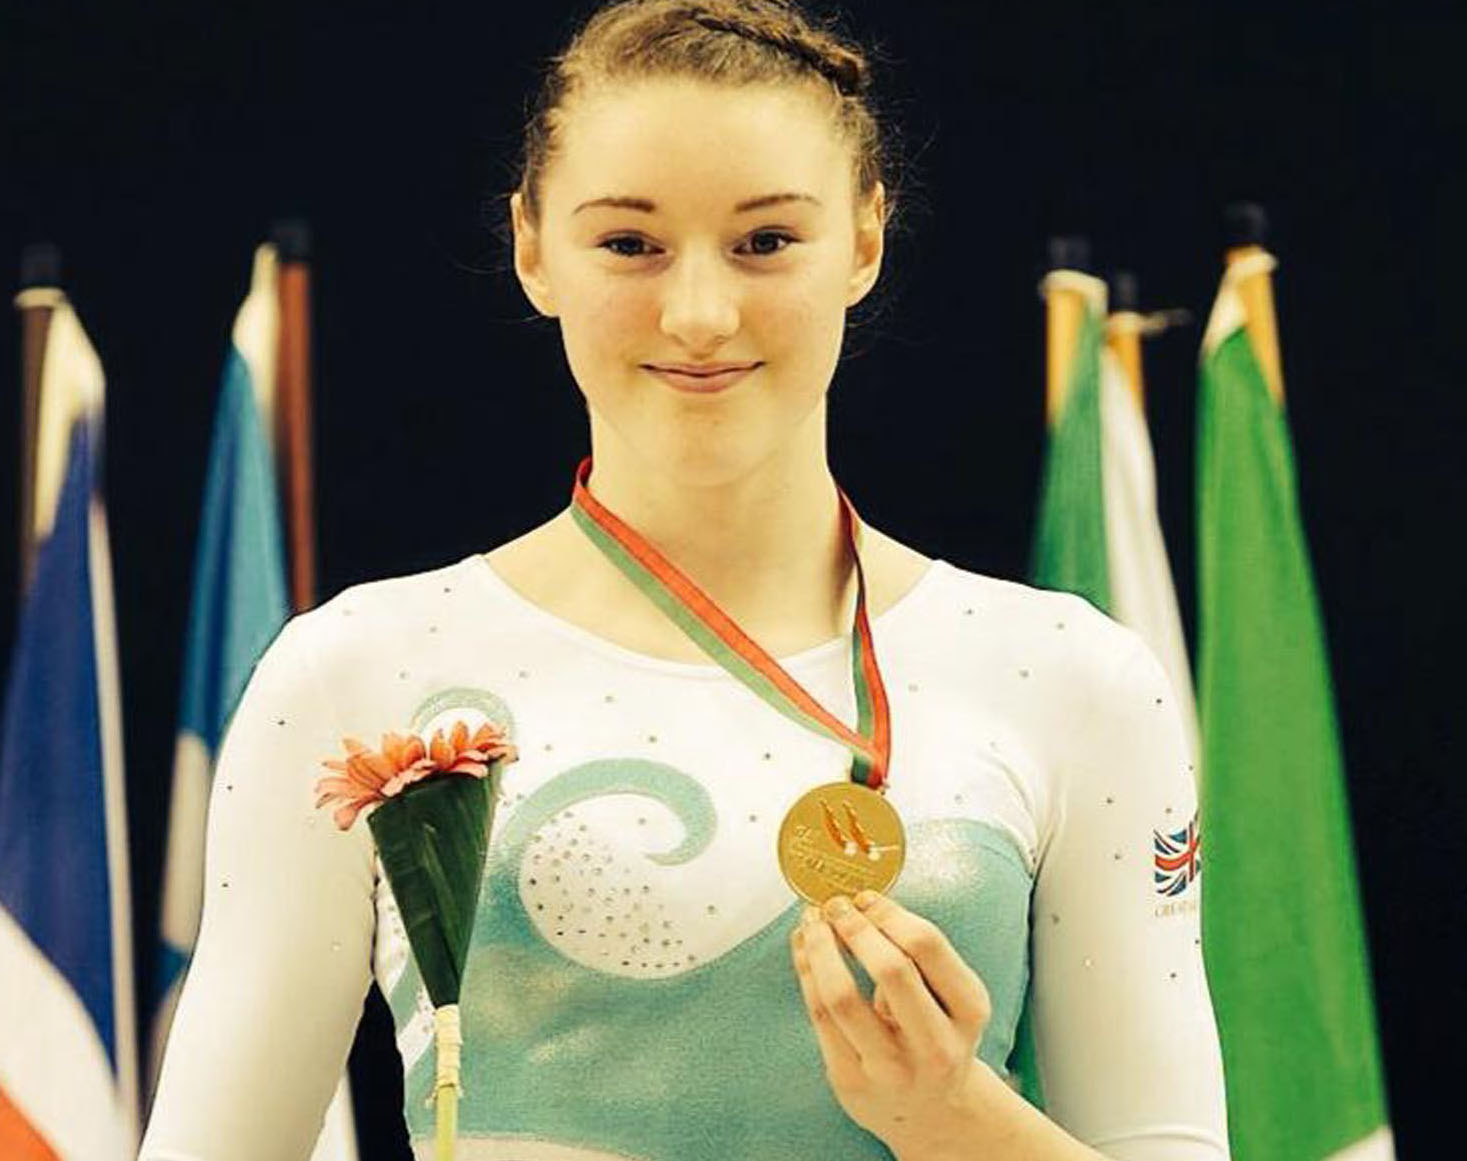 PRIDE OF PLACE: Izzy Songhurst (centre) on the podium in Portugal